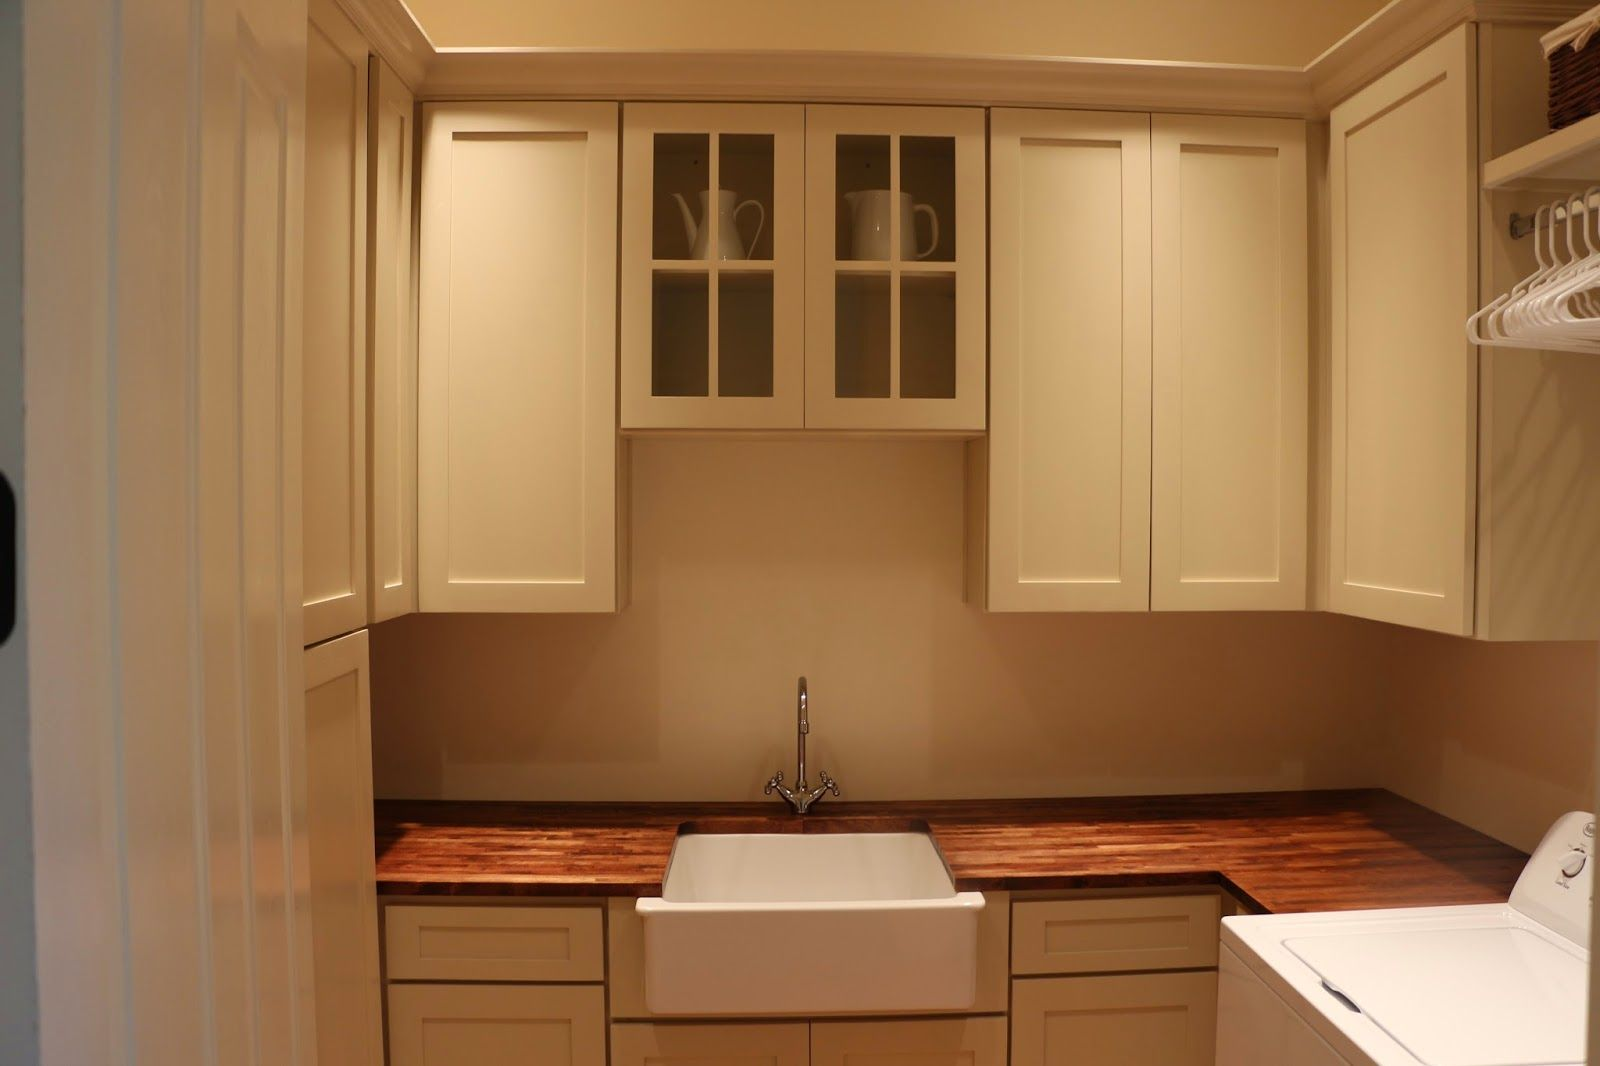 Cheap Farmhouse Sink Ikea Laundry Room Butler 39s Pantry Ikea Farmhouse Sink